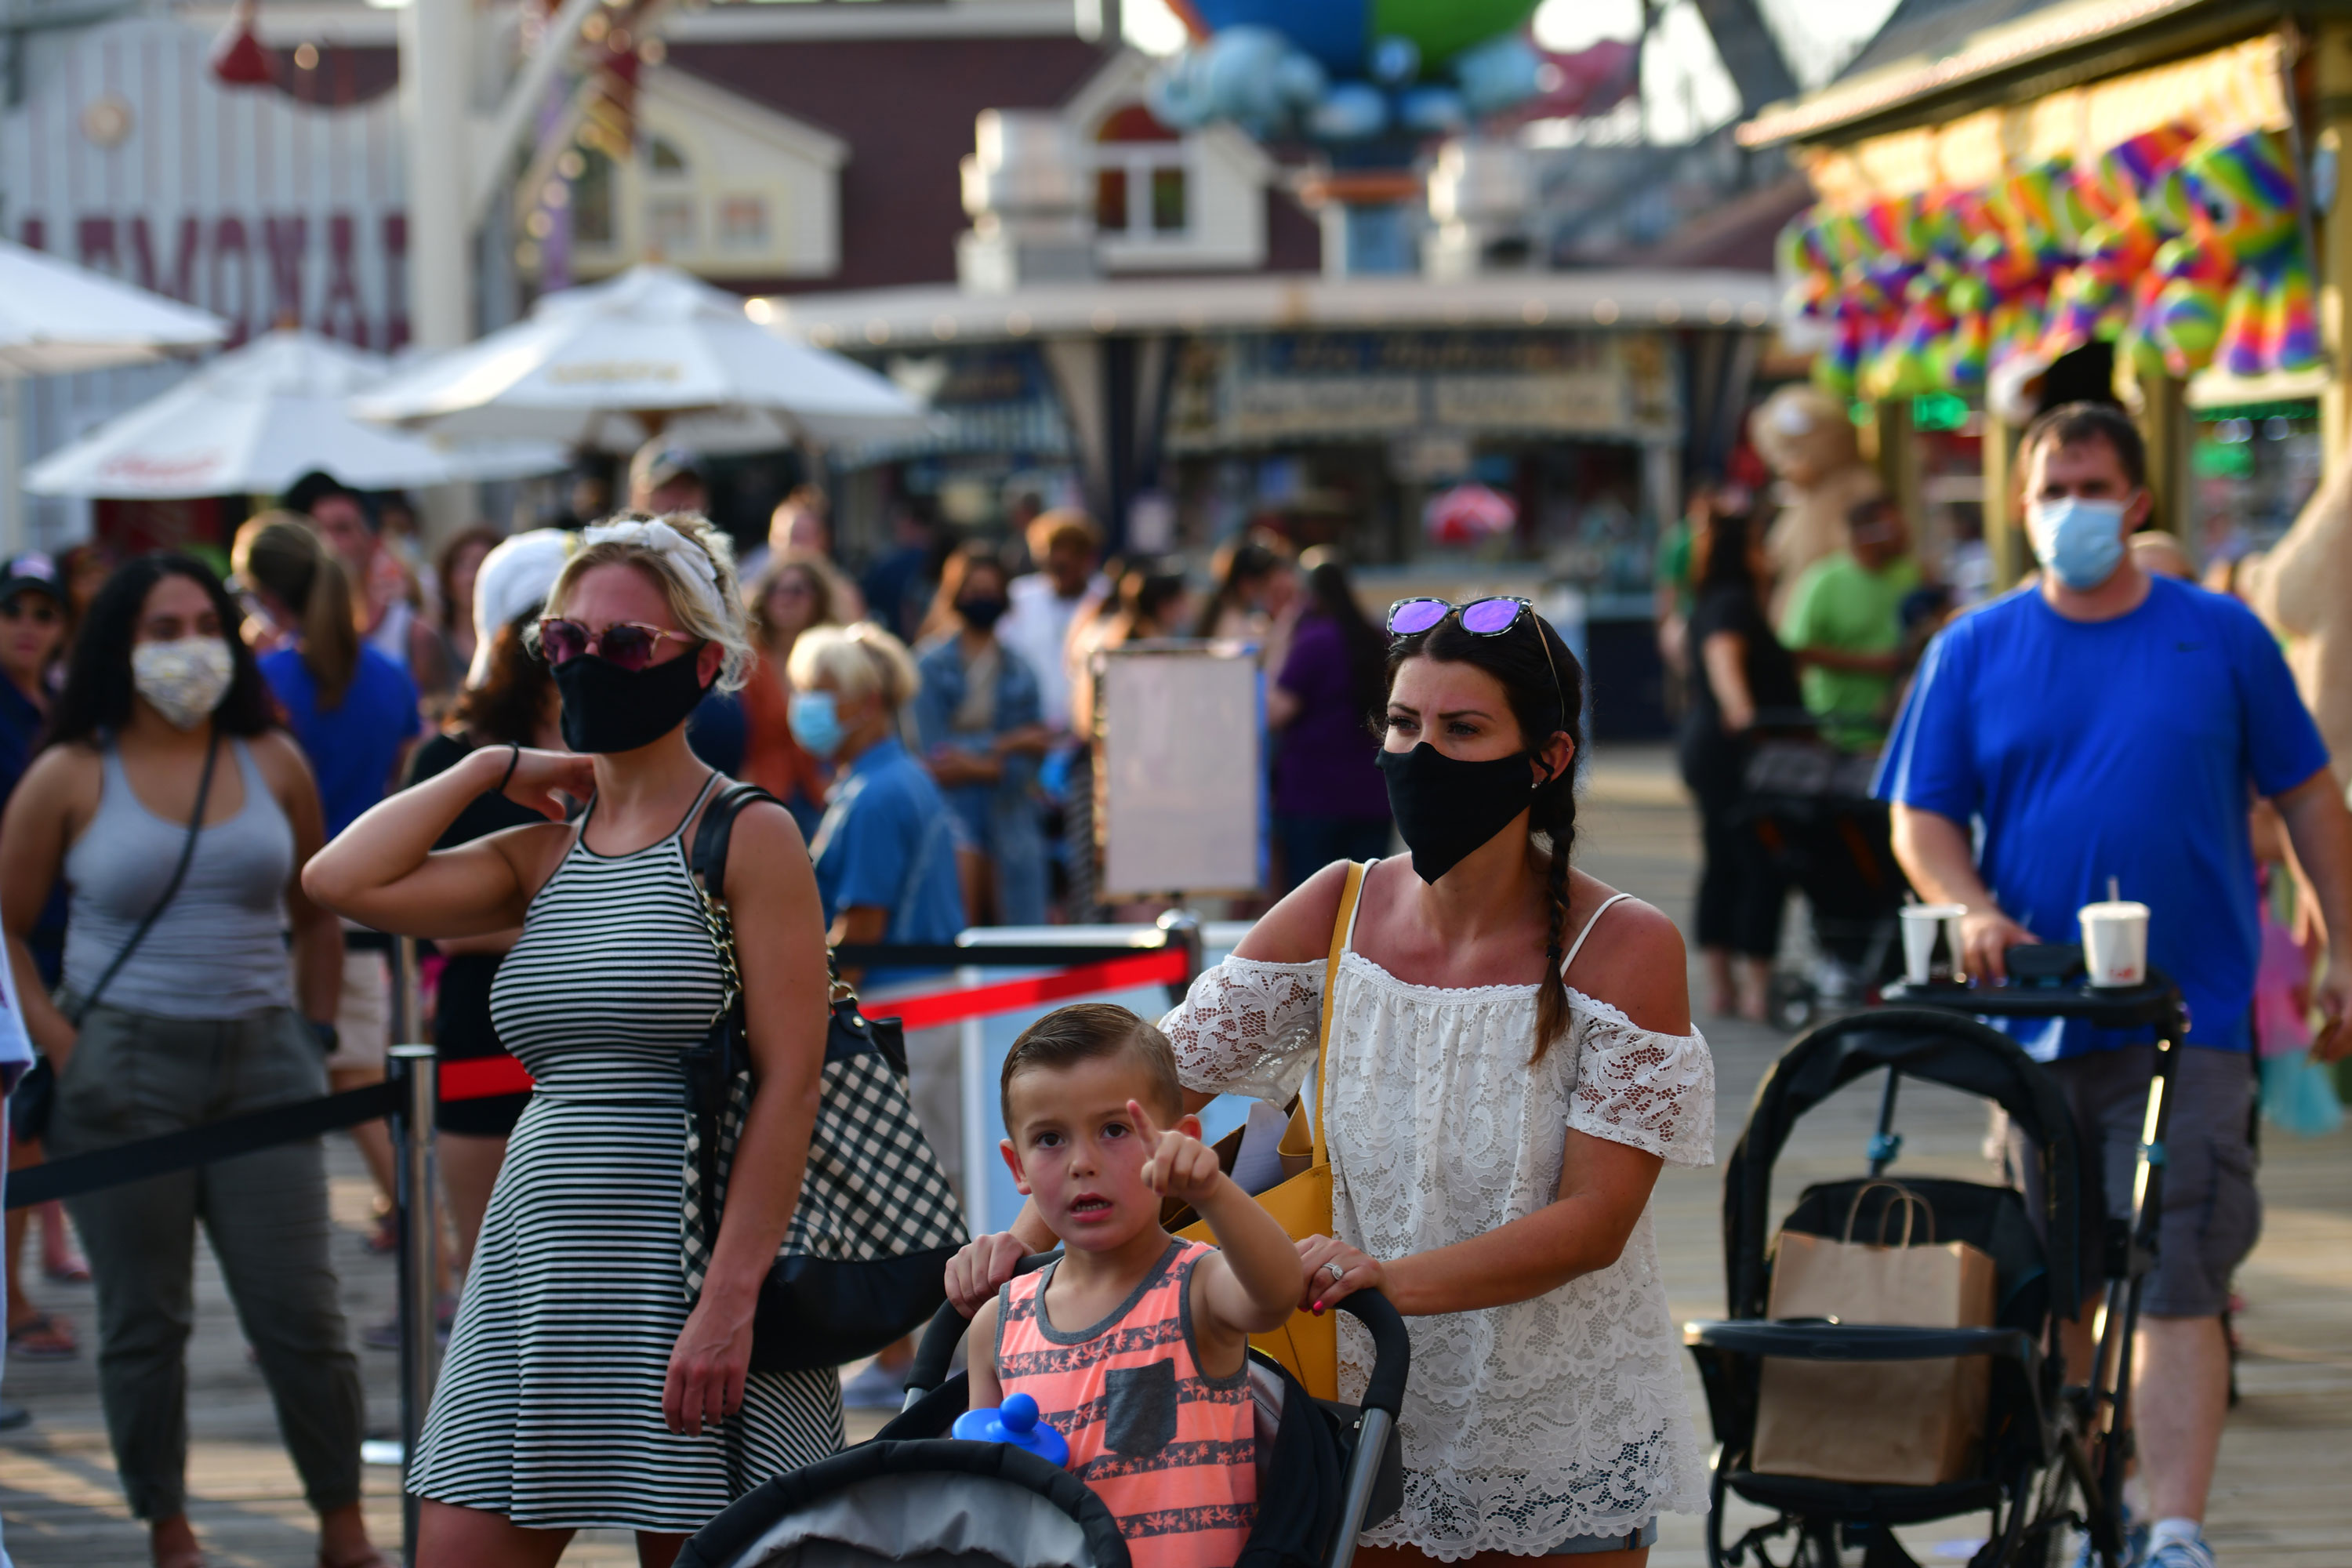 People wait in line at the entrance to an amusement pier on July 3 in Wildwood, New Jersey.